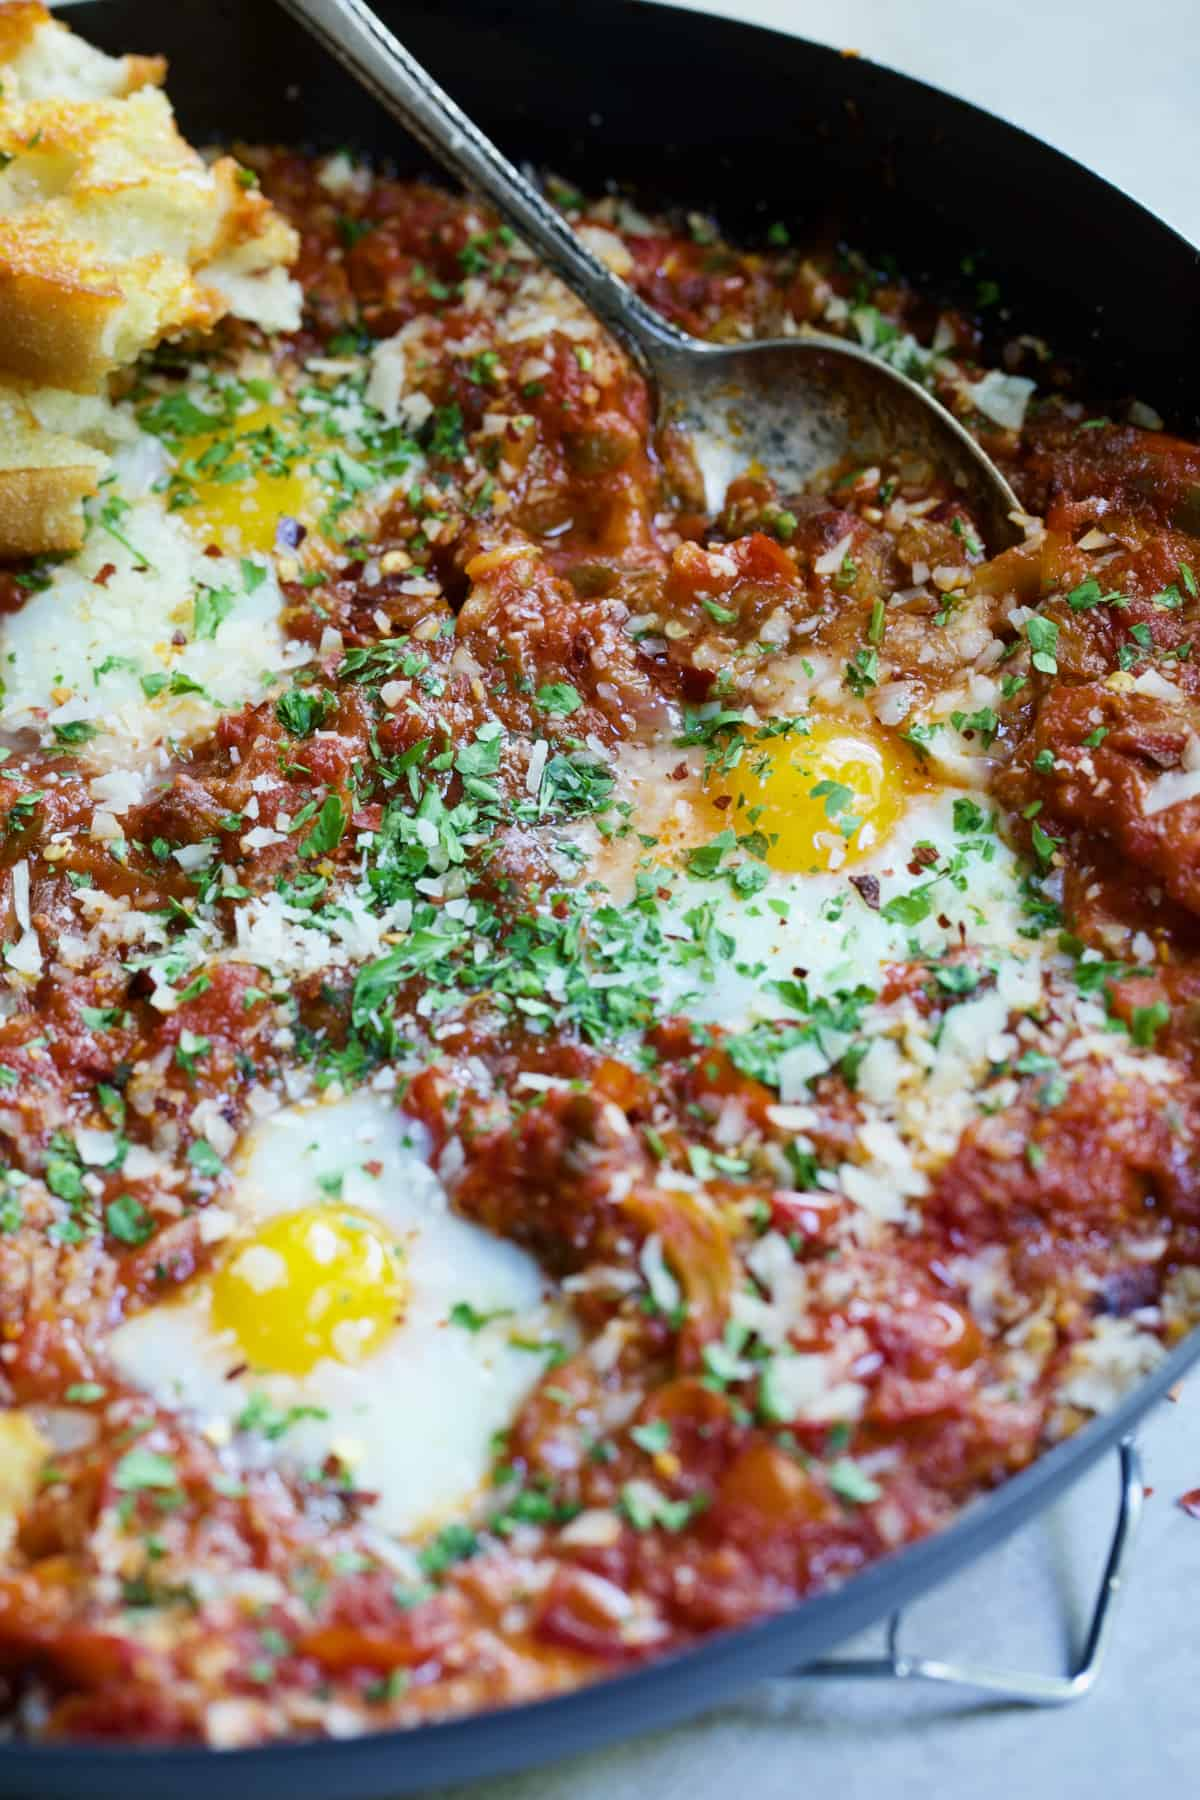 Eggs in Purgatory with Italian Sausage with serving spoon in black skillet.